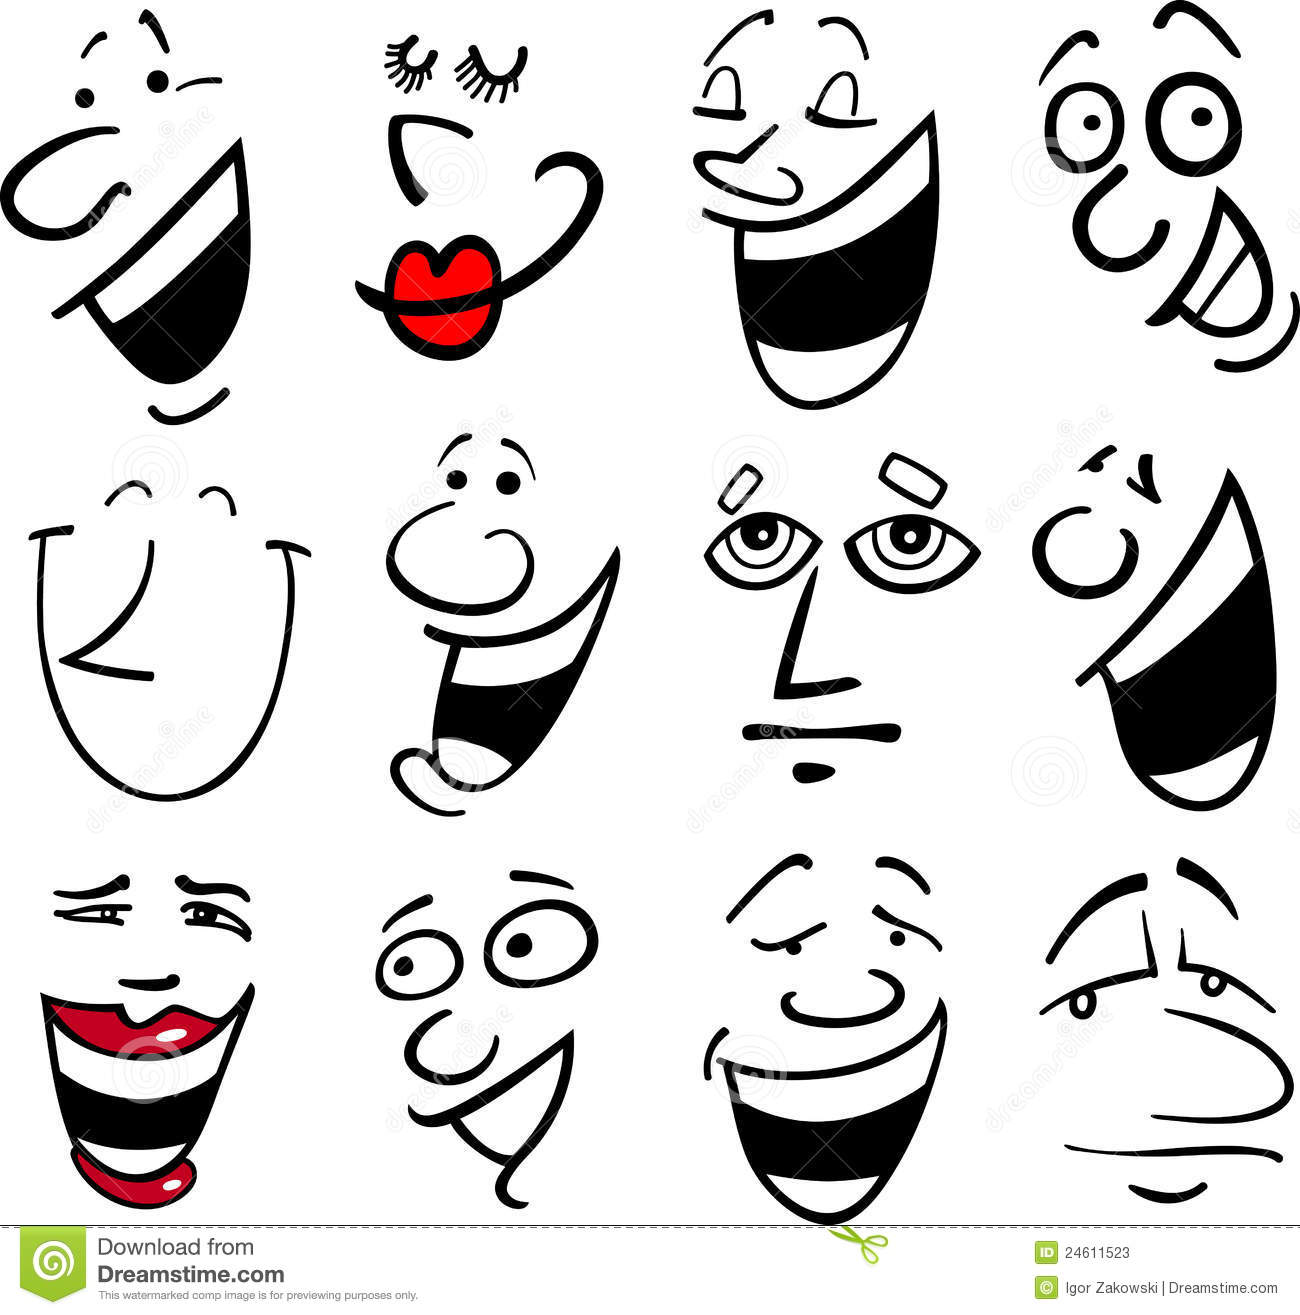 Cartoon Emotions Illustration Stock Photos - Image: 24611523